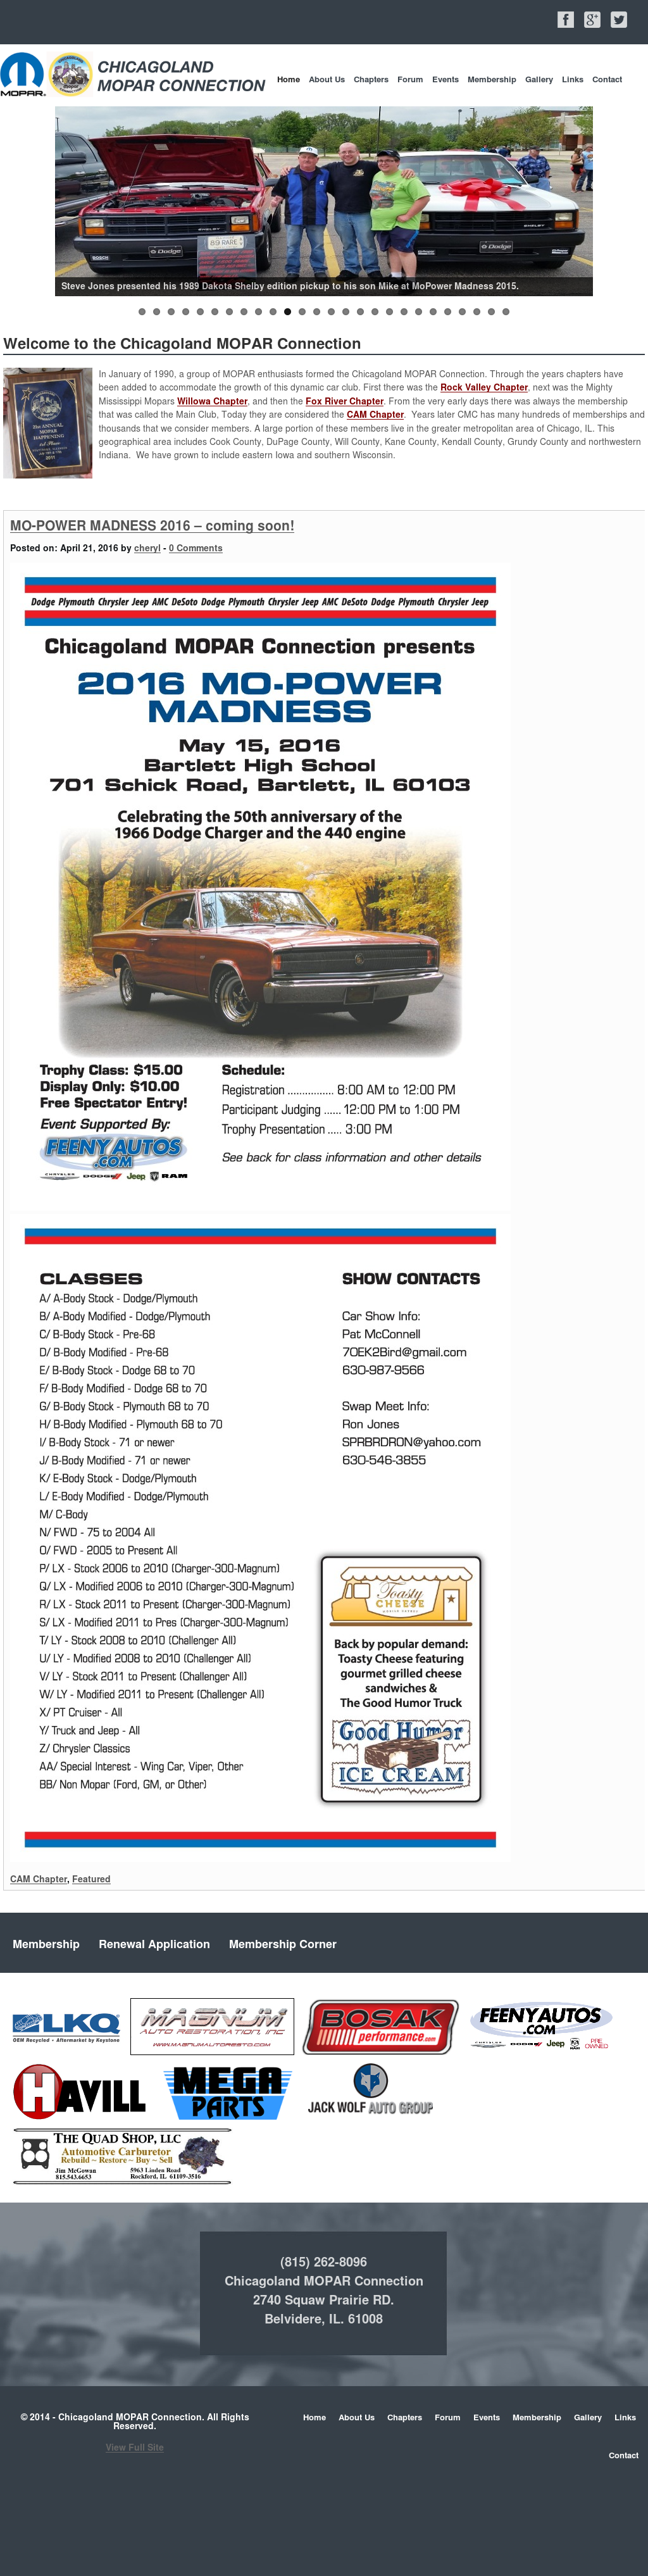 Chicagoland Mopar Connection Competitors, Revenue and